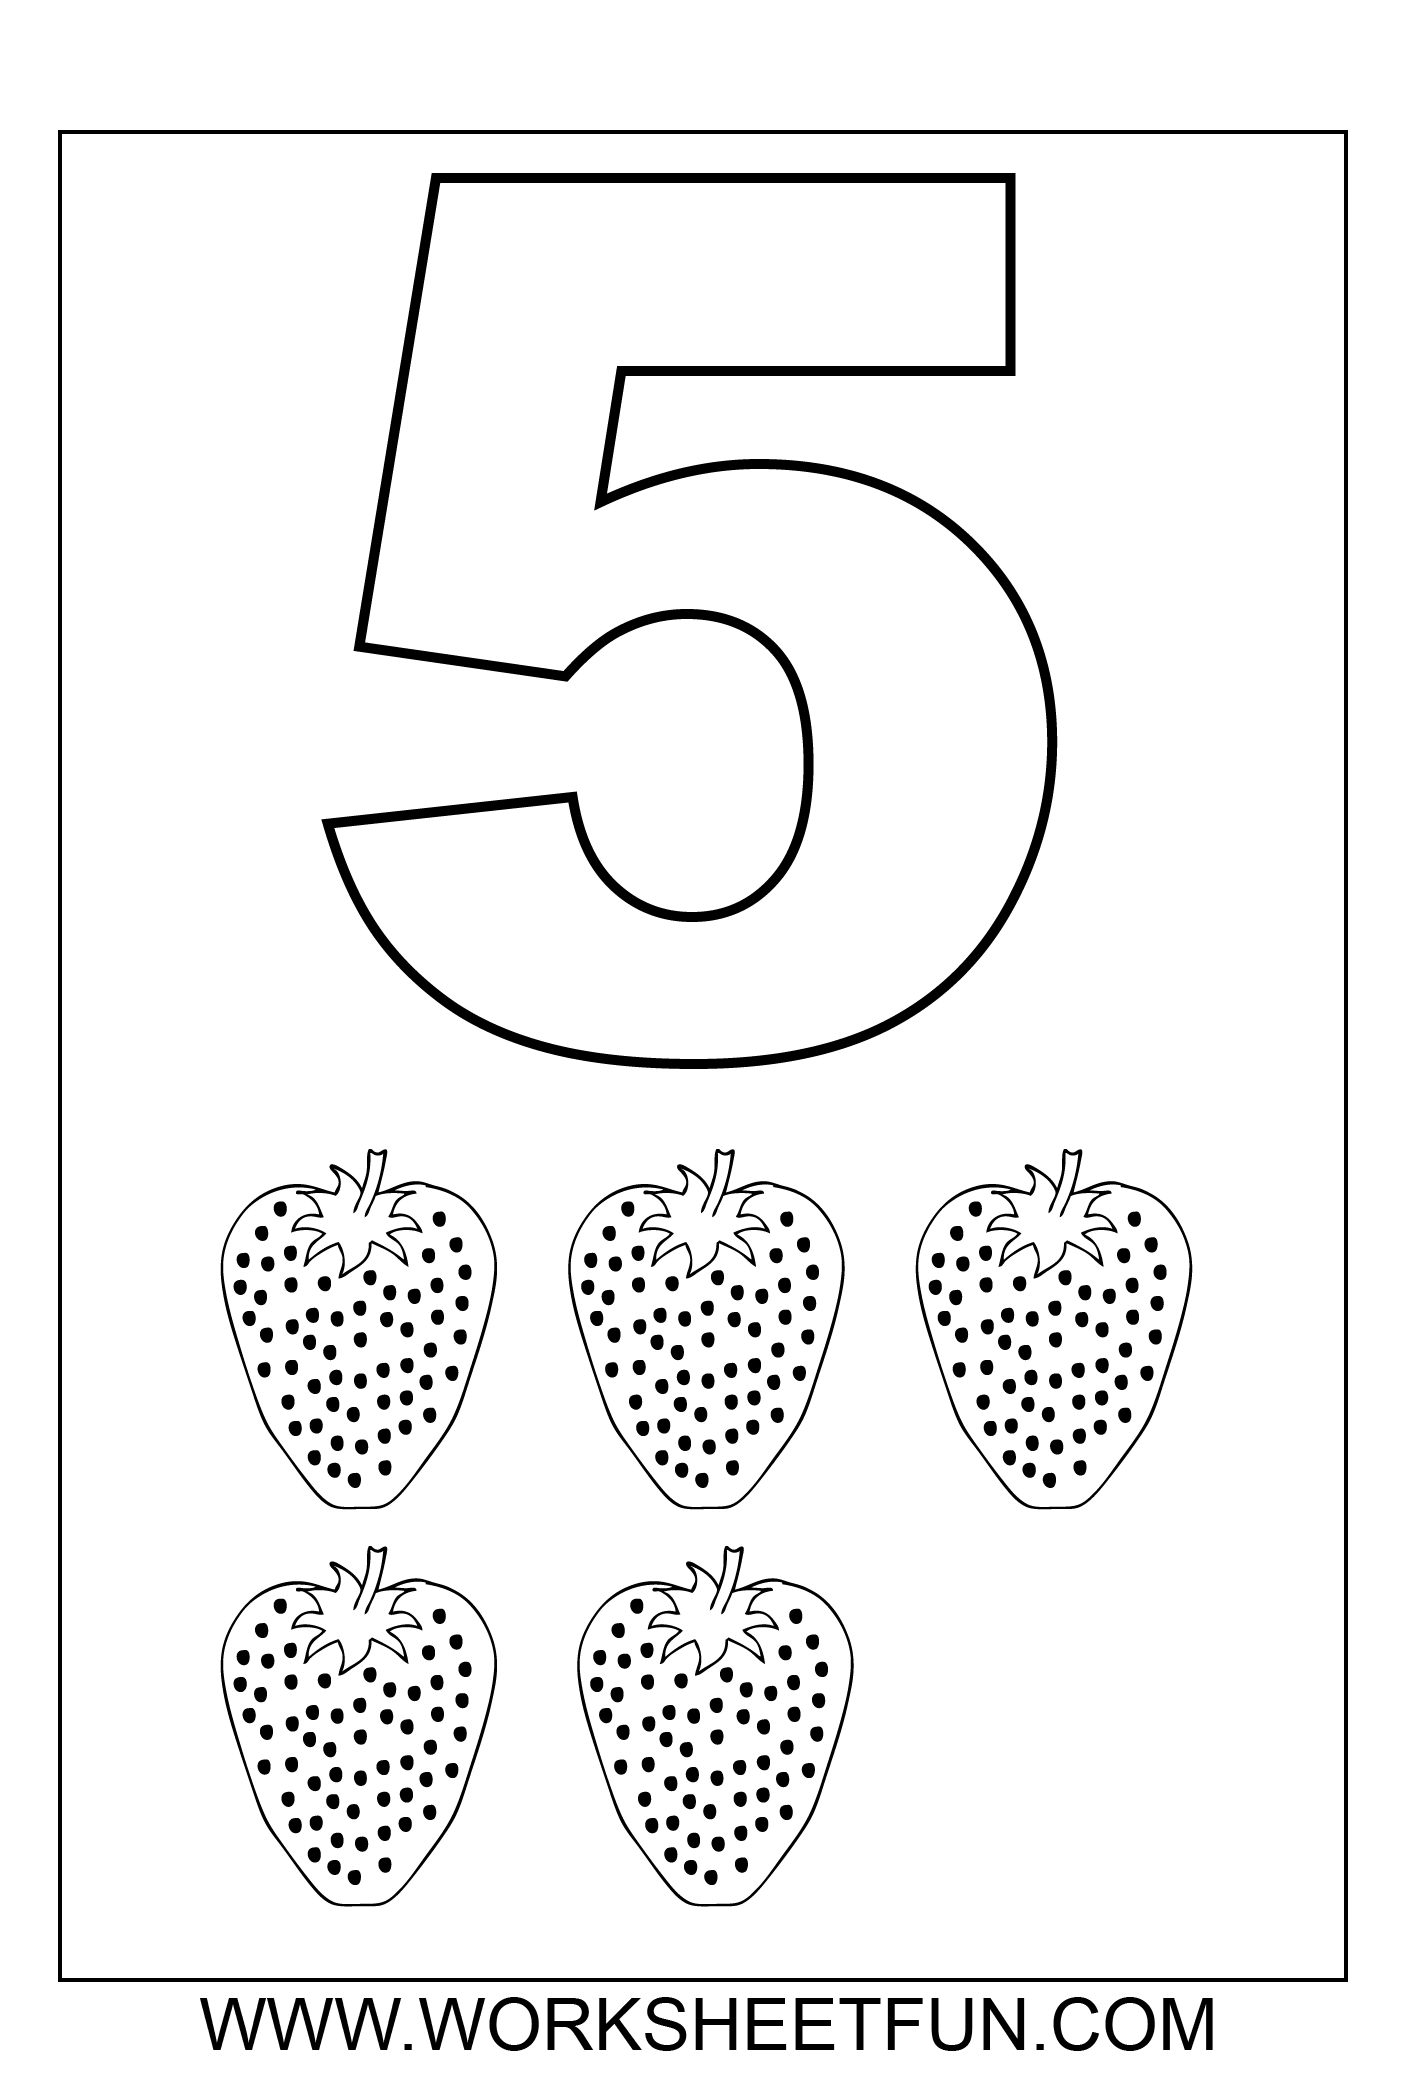 Color worksheets by number - Number Coloring